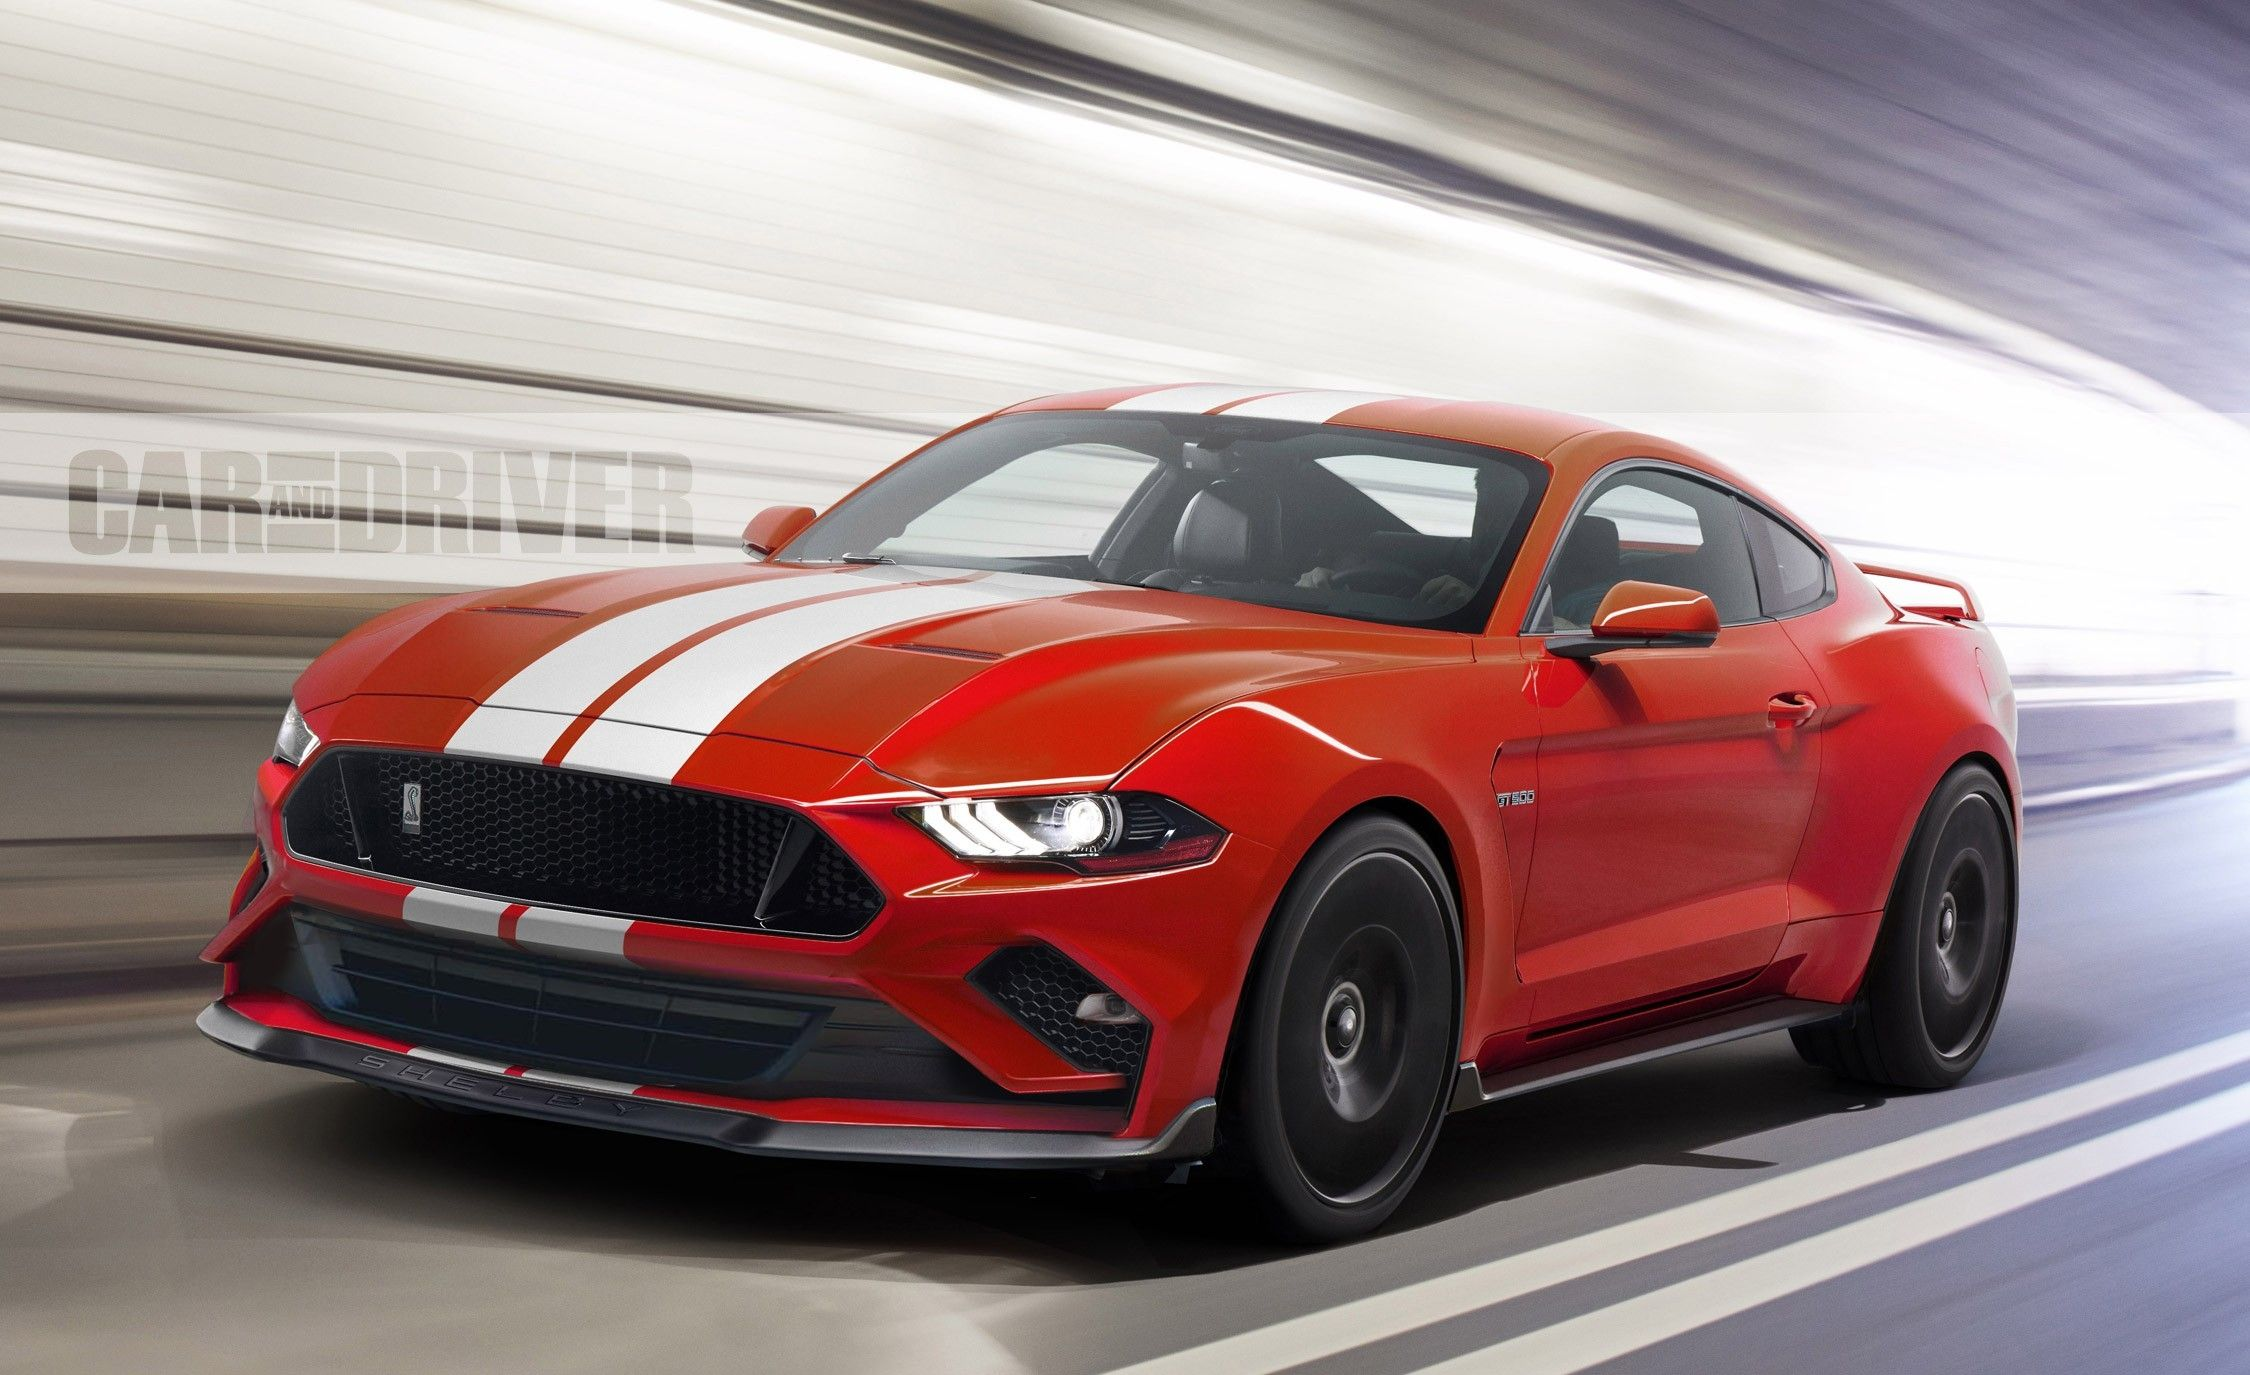 2018 Ford Mustang Shelby Gt 350 Redesign And Price Ford Mustang